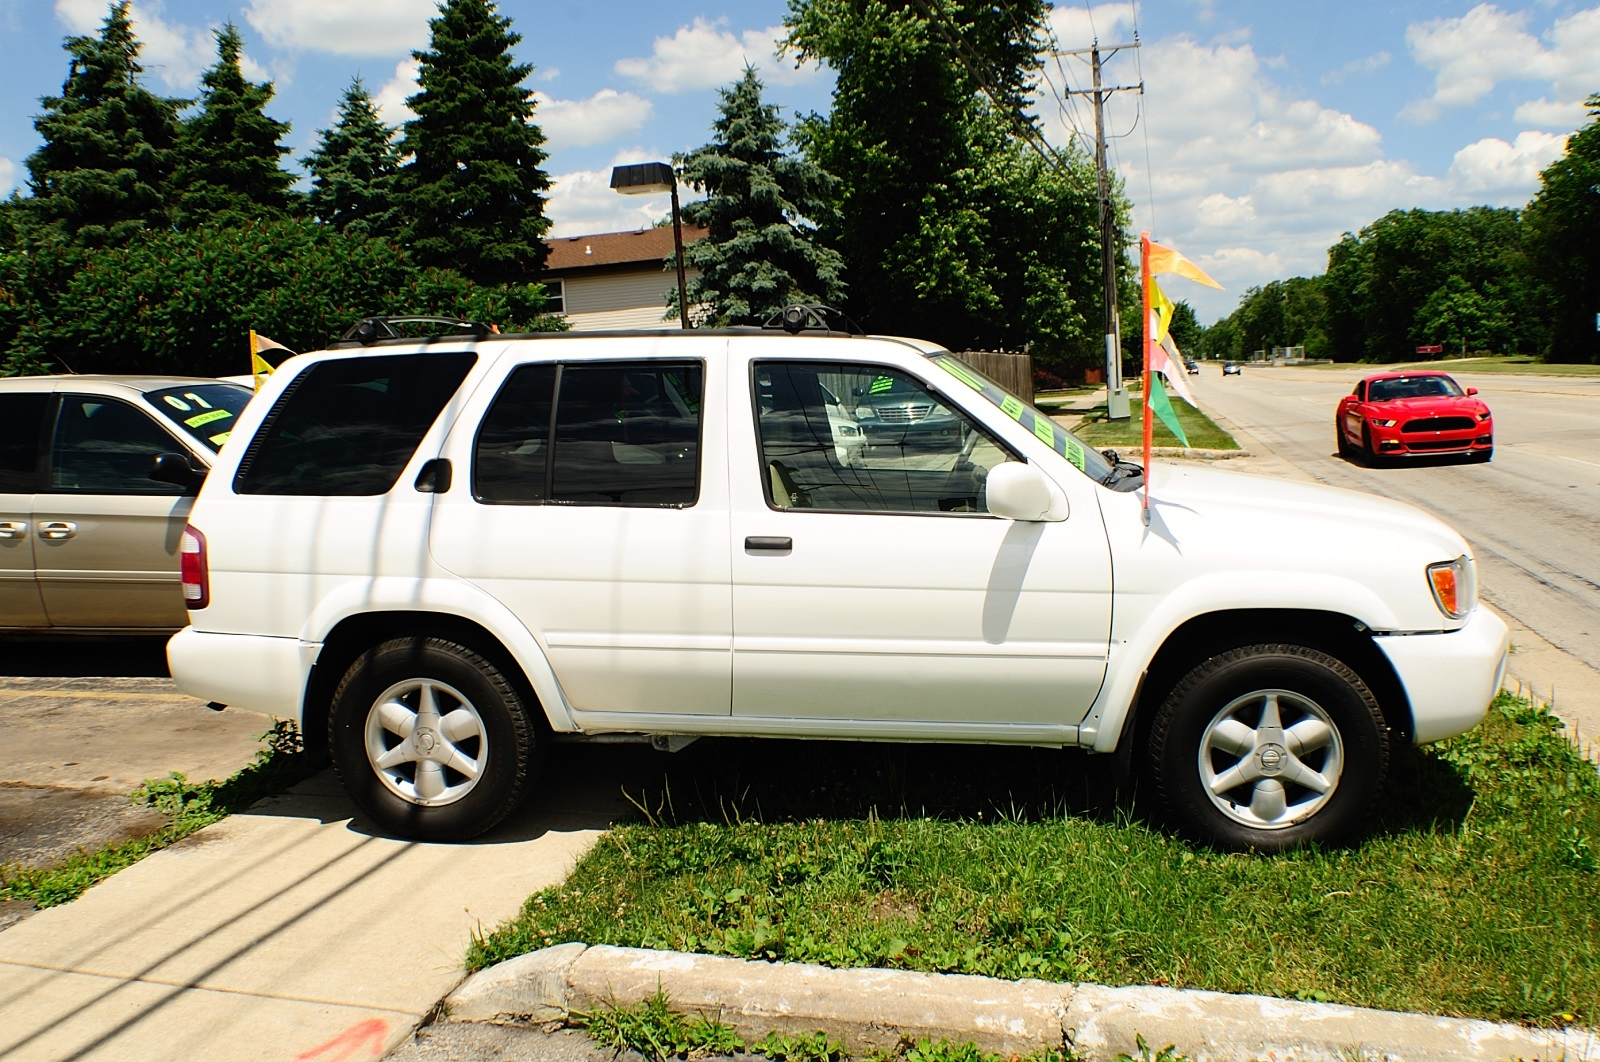 2001 Nissan Pathfinder White Used 4x4 SUV Sale Downers Grove Carpentersville Cicero Oak Park